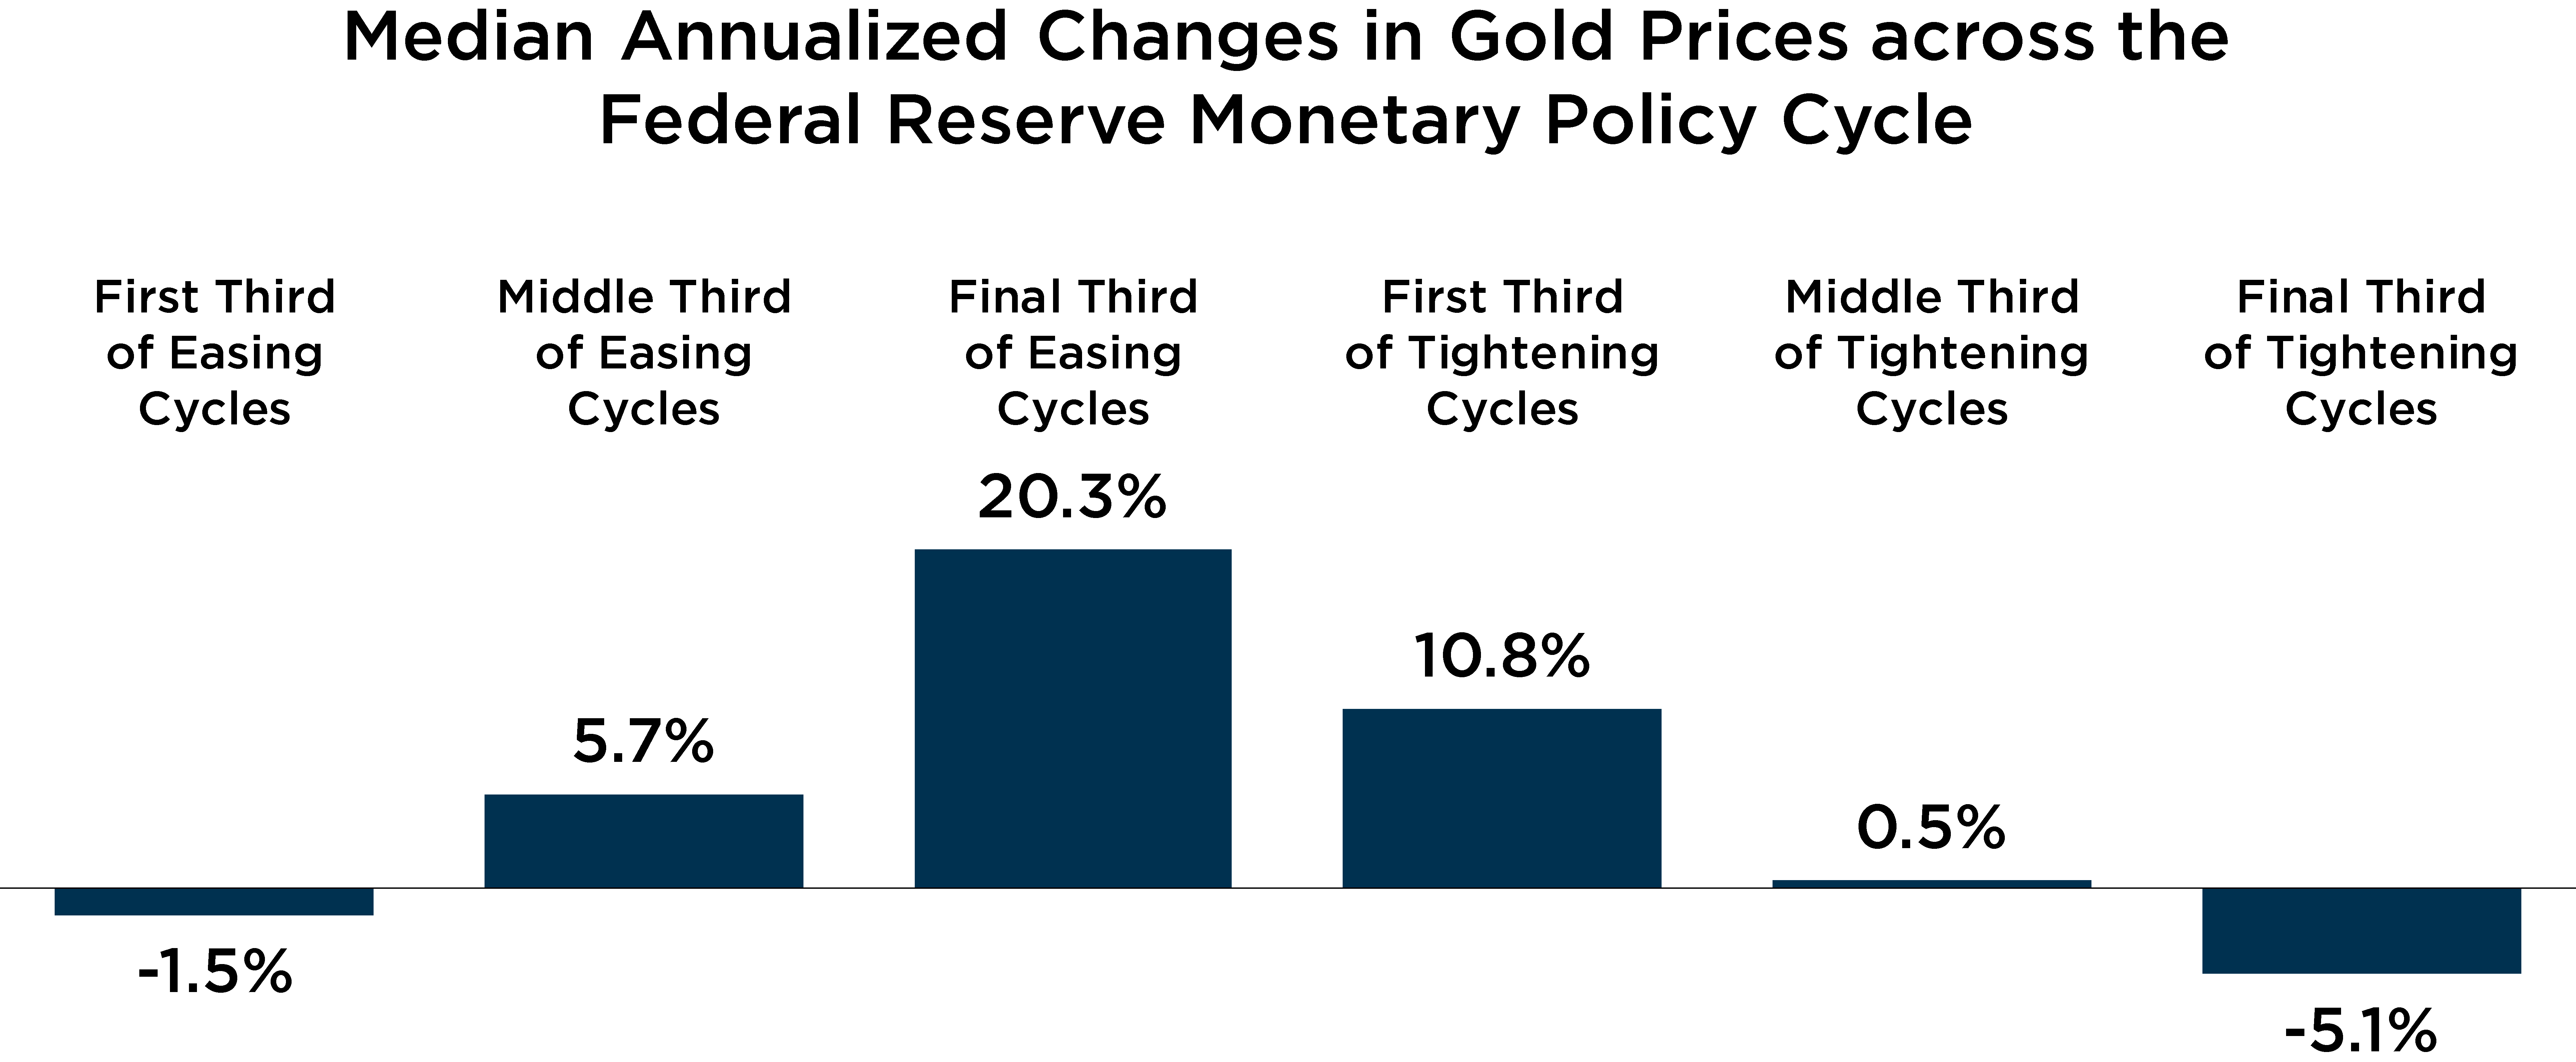 Graph depicting median annualized changes in gold prices across the federal reserve monetary policy cycle